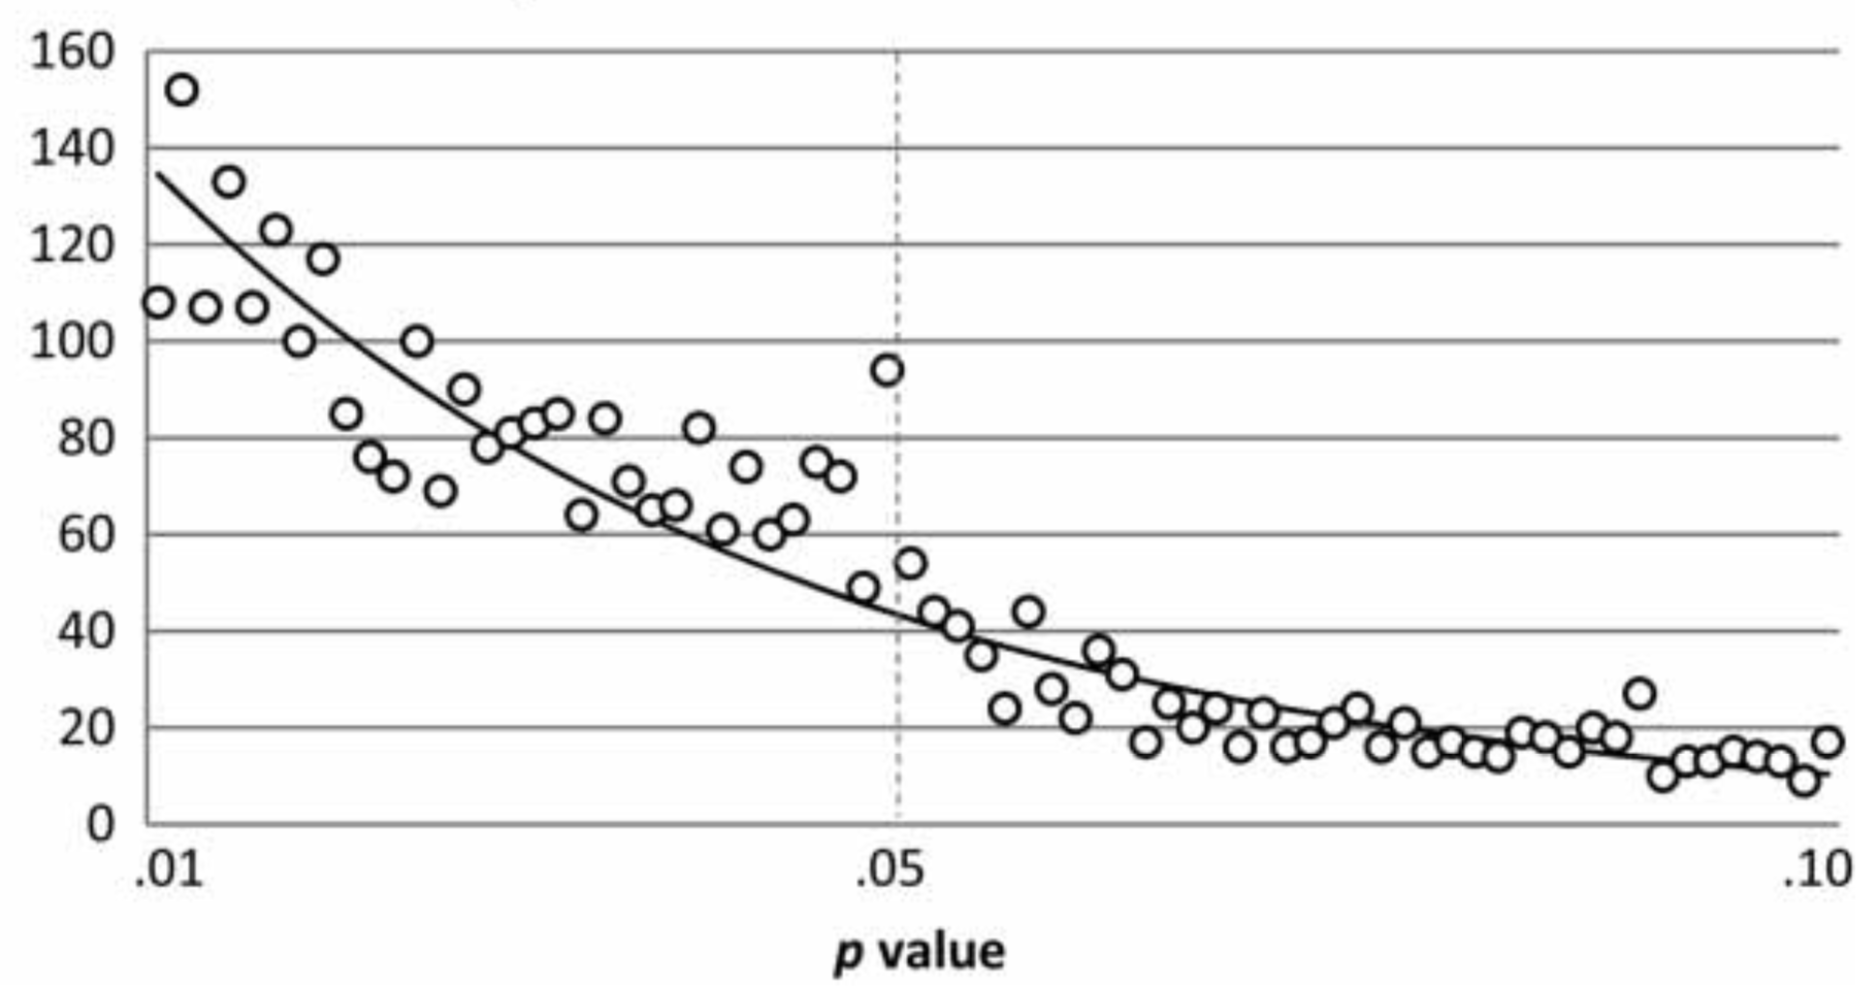 Histogram of published p-values; spike at p=0.05